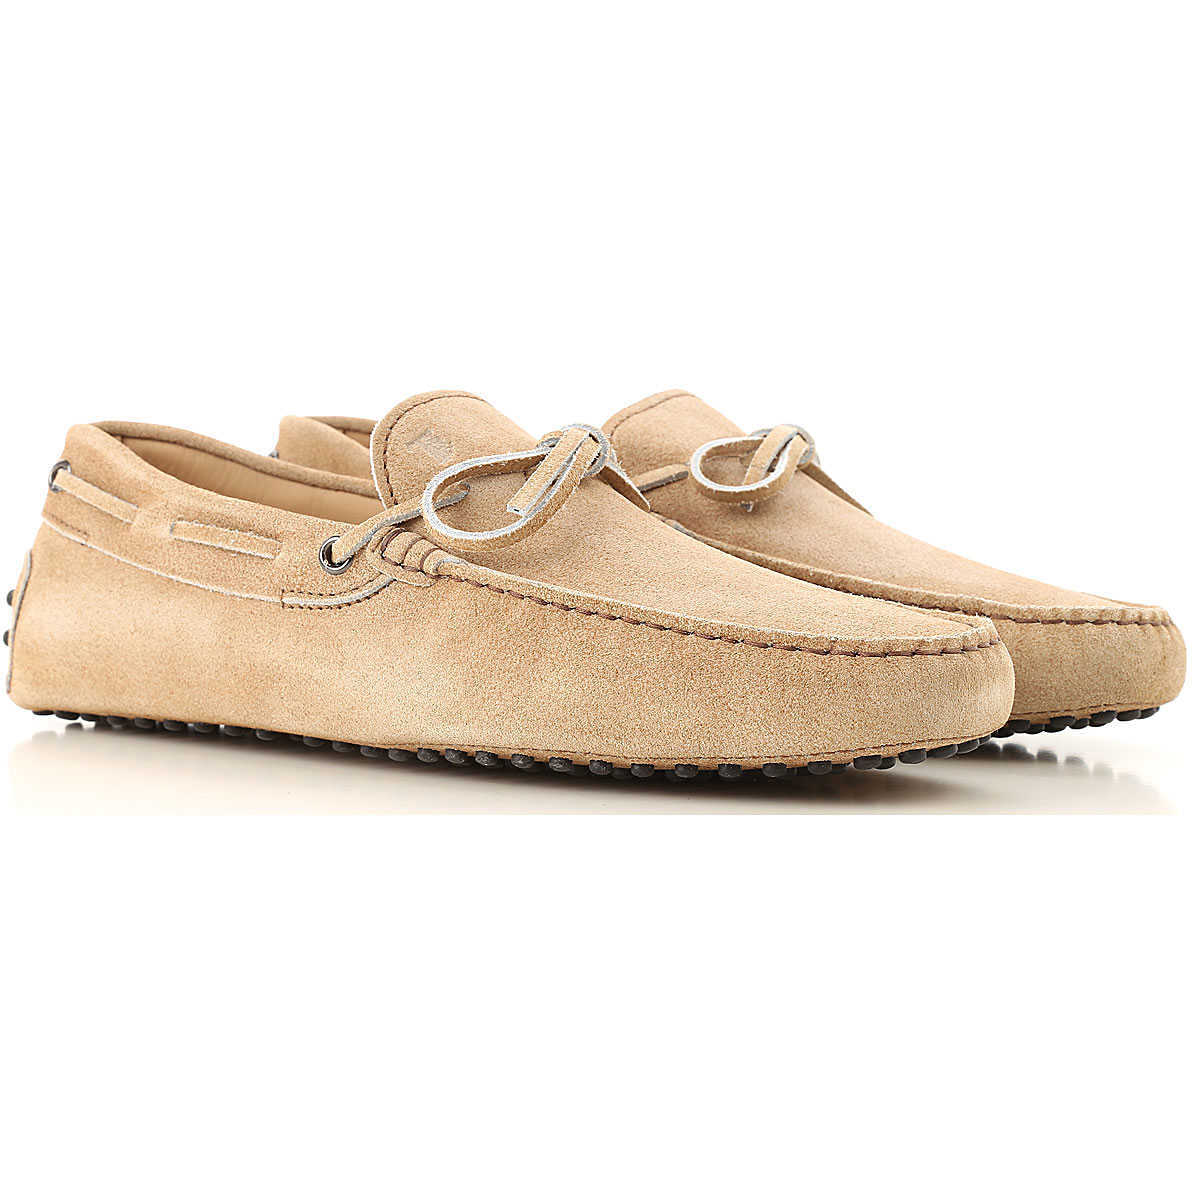 Tods Driver Loafer Shoes for Men Biscuit Canada - GOOFASH - Mens LOAFERS